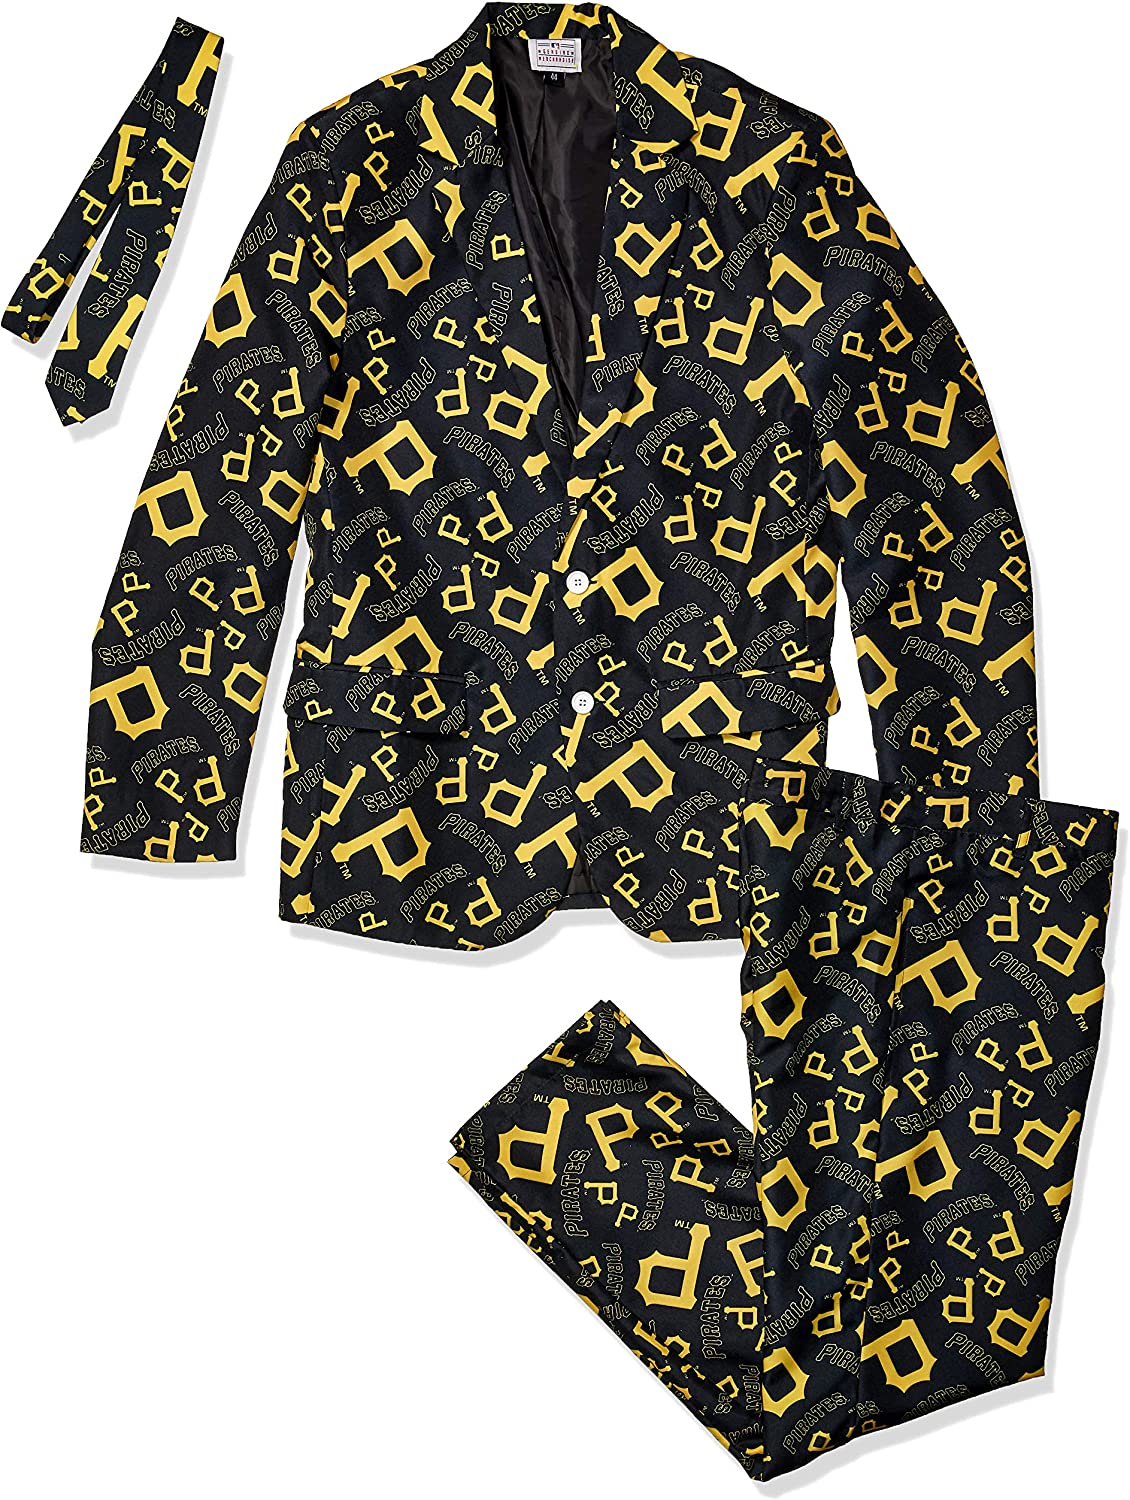 Mens FOCO MLB mens Repeat Ugly Business Suit